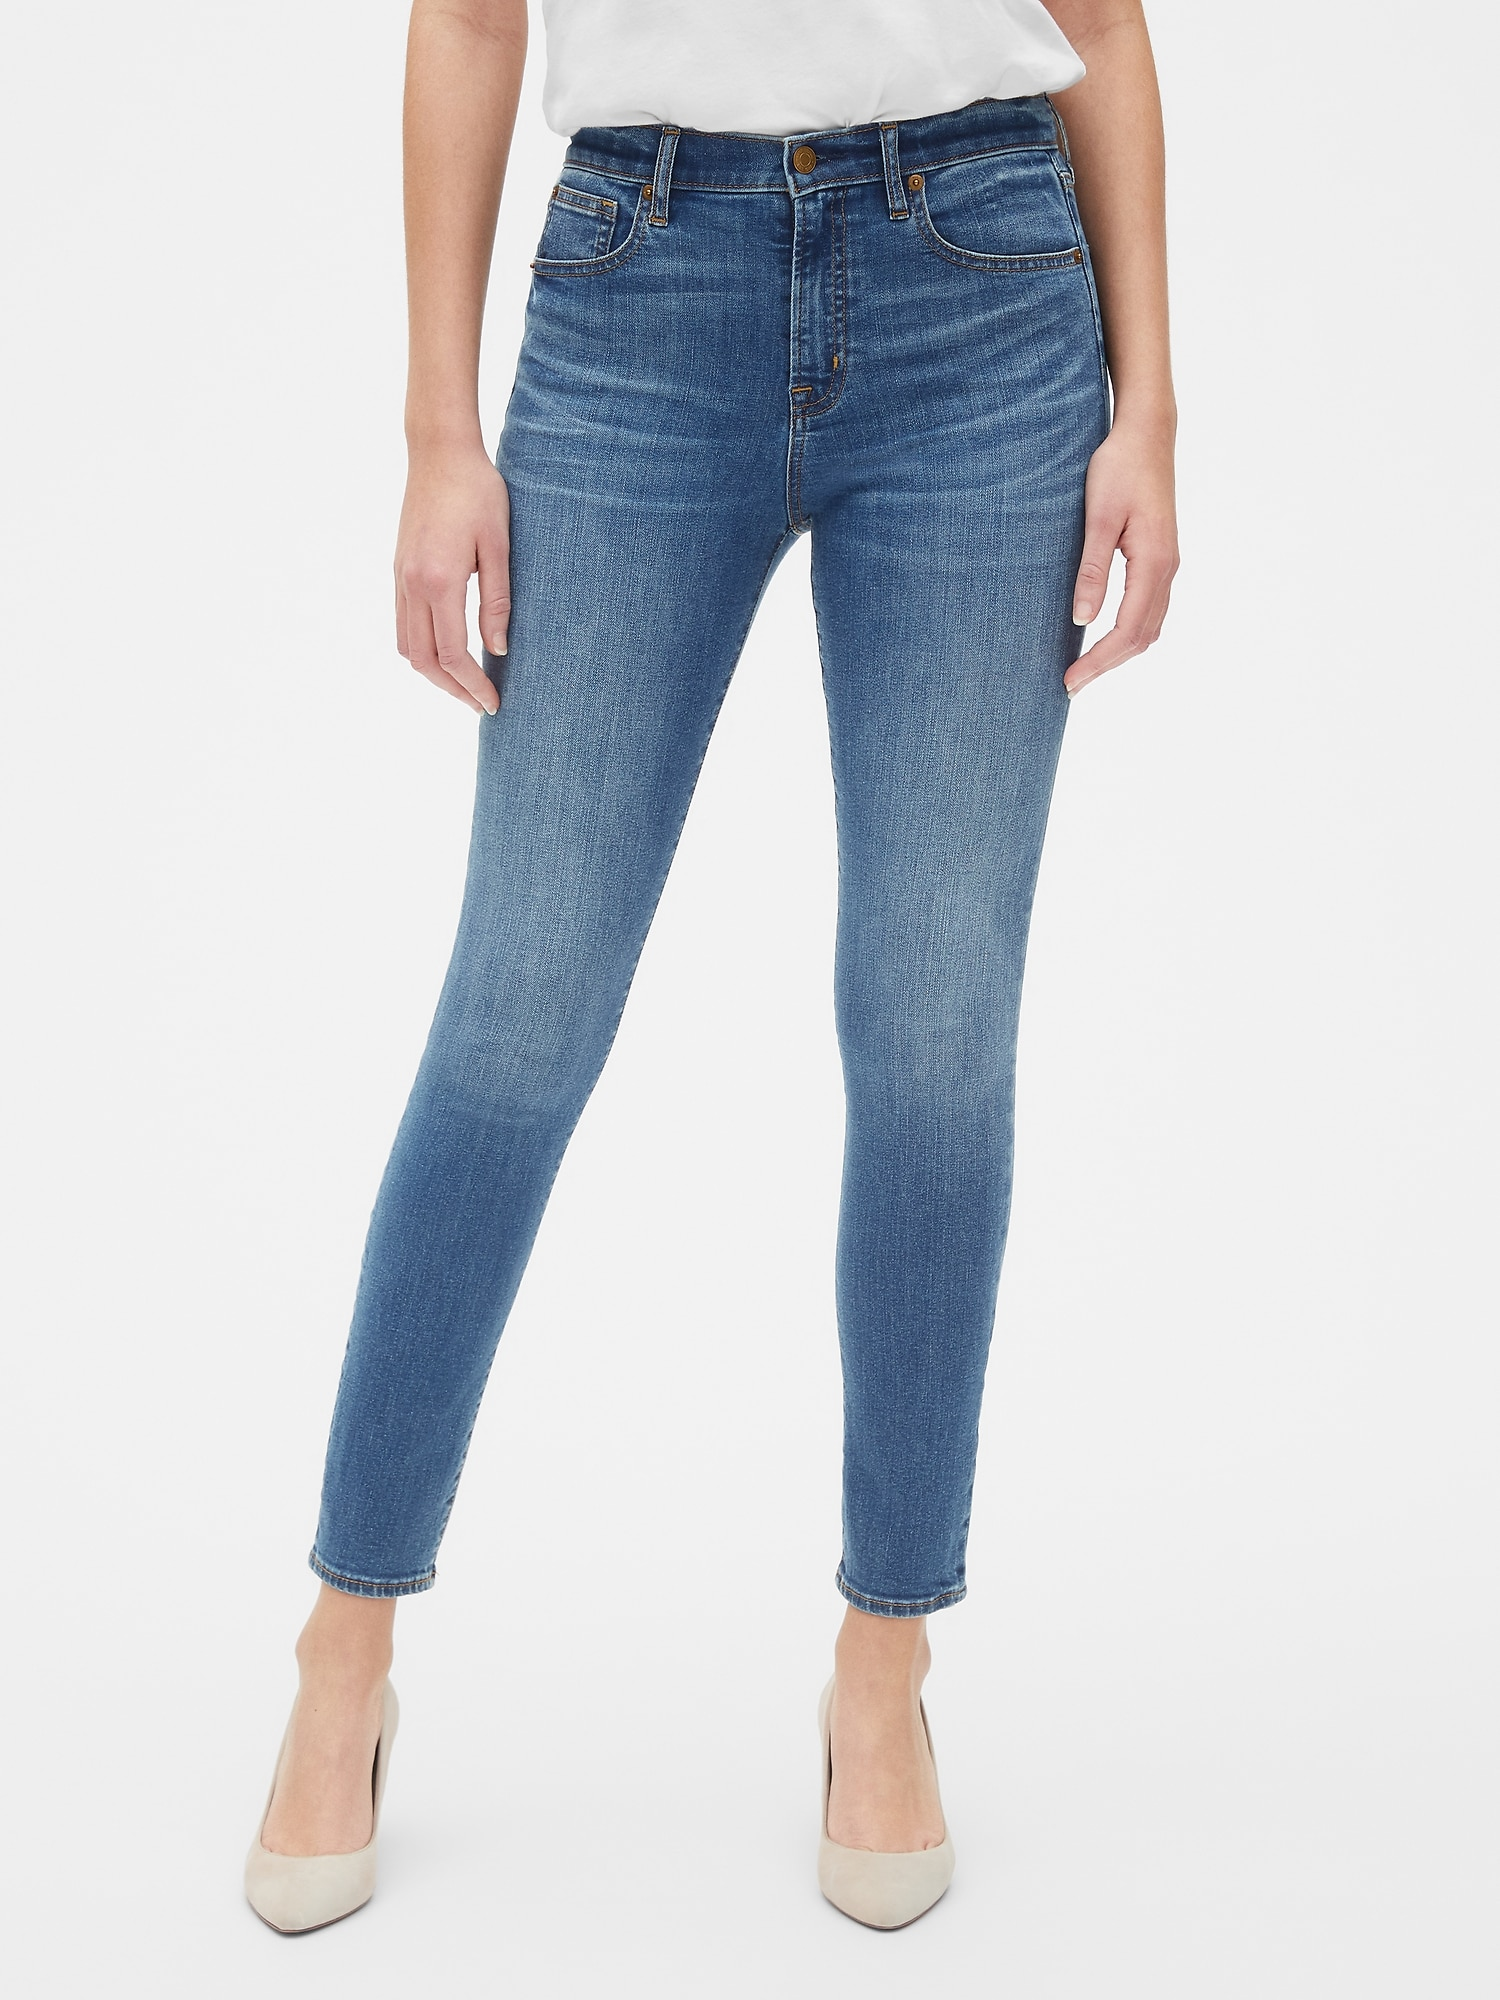 7dfc82d9c3921 High Rise True Skinny Jeans with Secret Smoothing Pockets | Gap